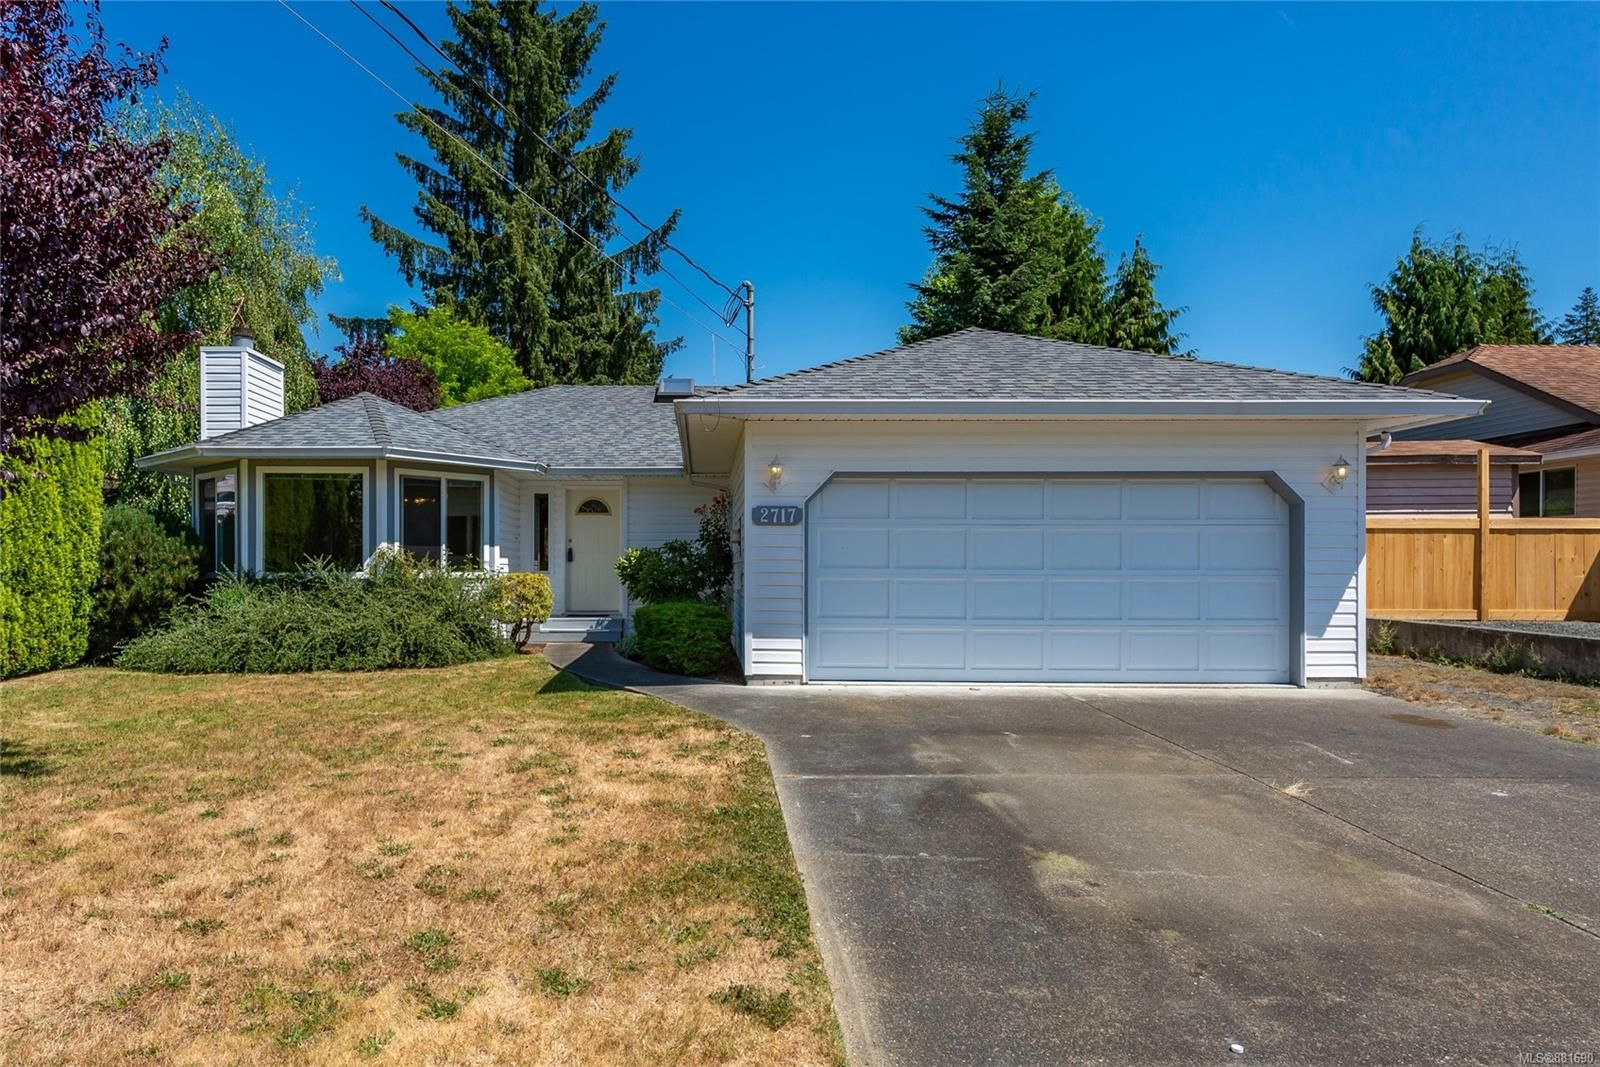 Main Photo: 2717 Fairmile Rd in : CR Willow Point House for sale (Campbell River)  : MLS®# 881690